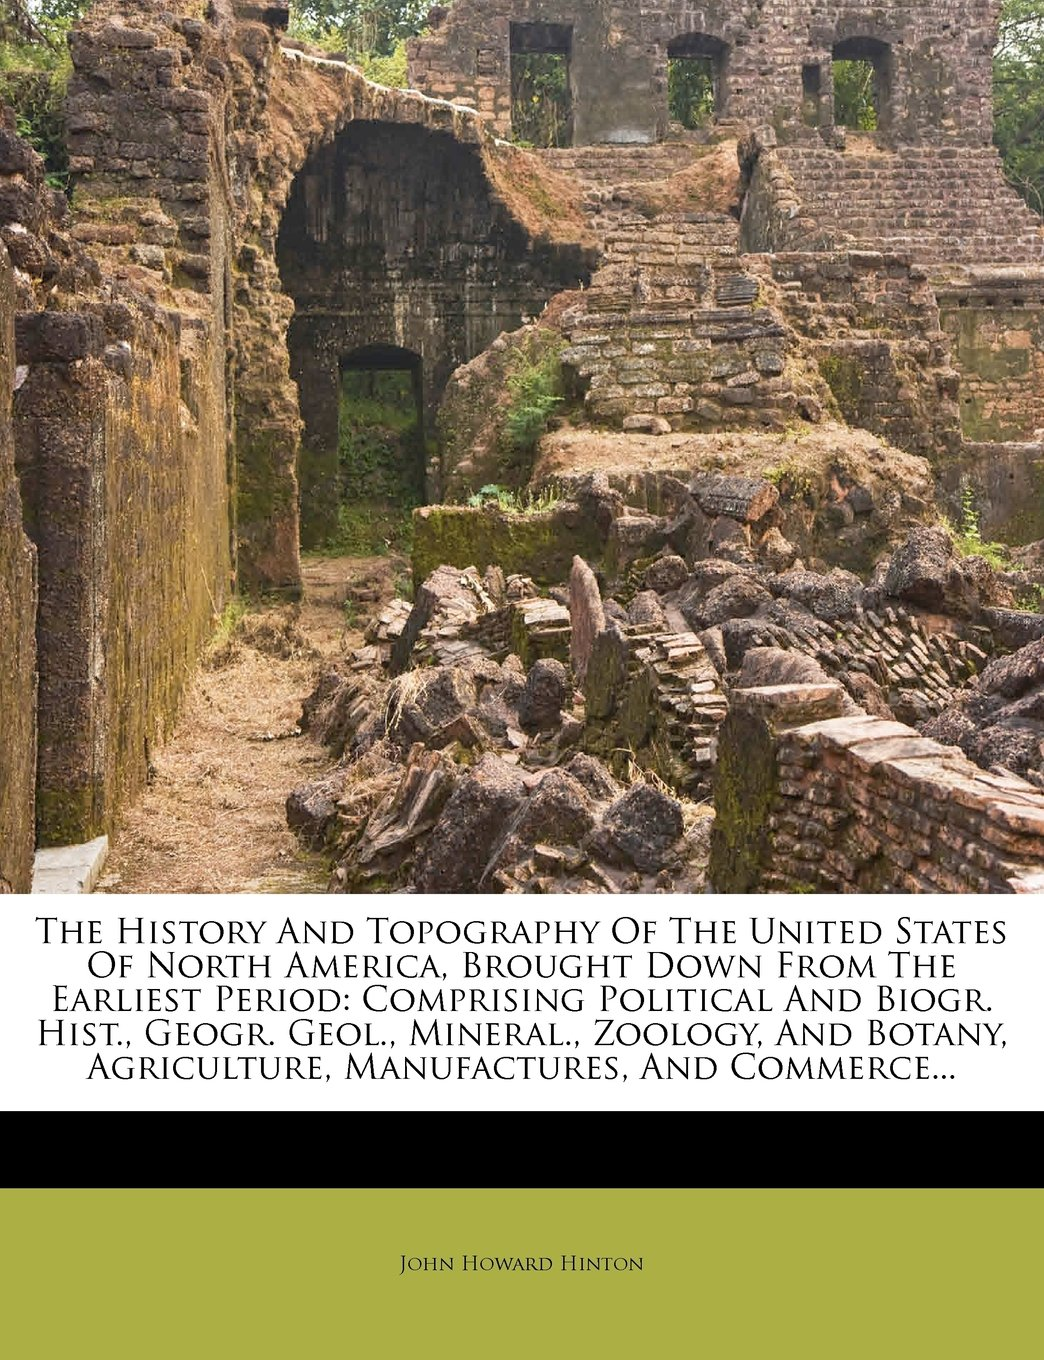 Download The History And Topography Of The United States Of North America, Brought Down From The Earliest Period: Comprising Political And Biogr. Hist, Geogr. Agriculture, Manufactures, And Commerce. ebook